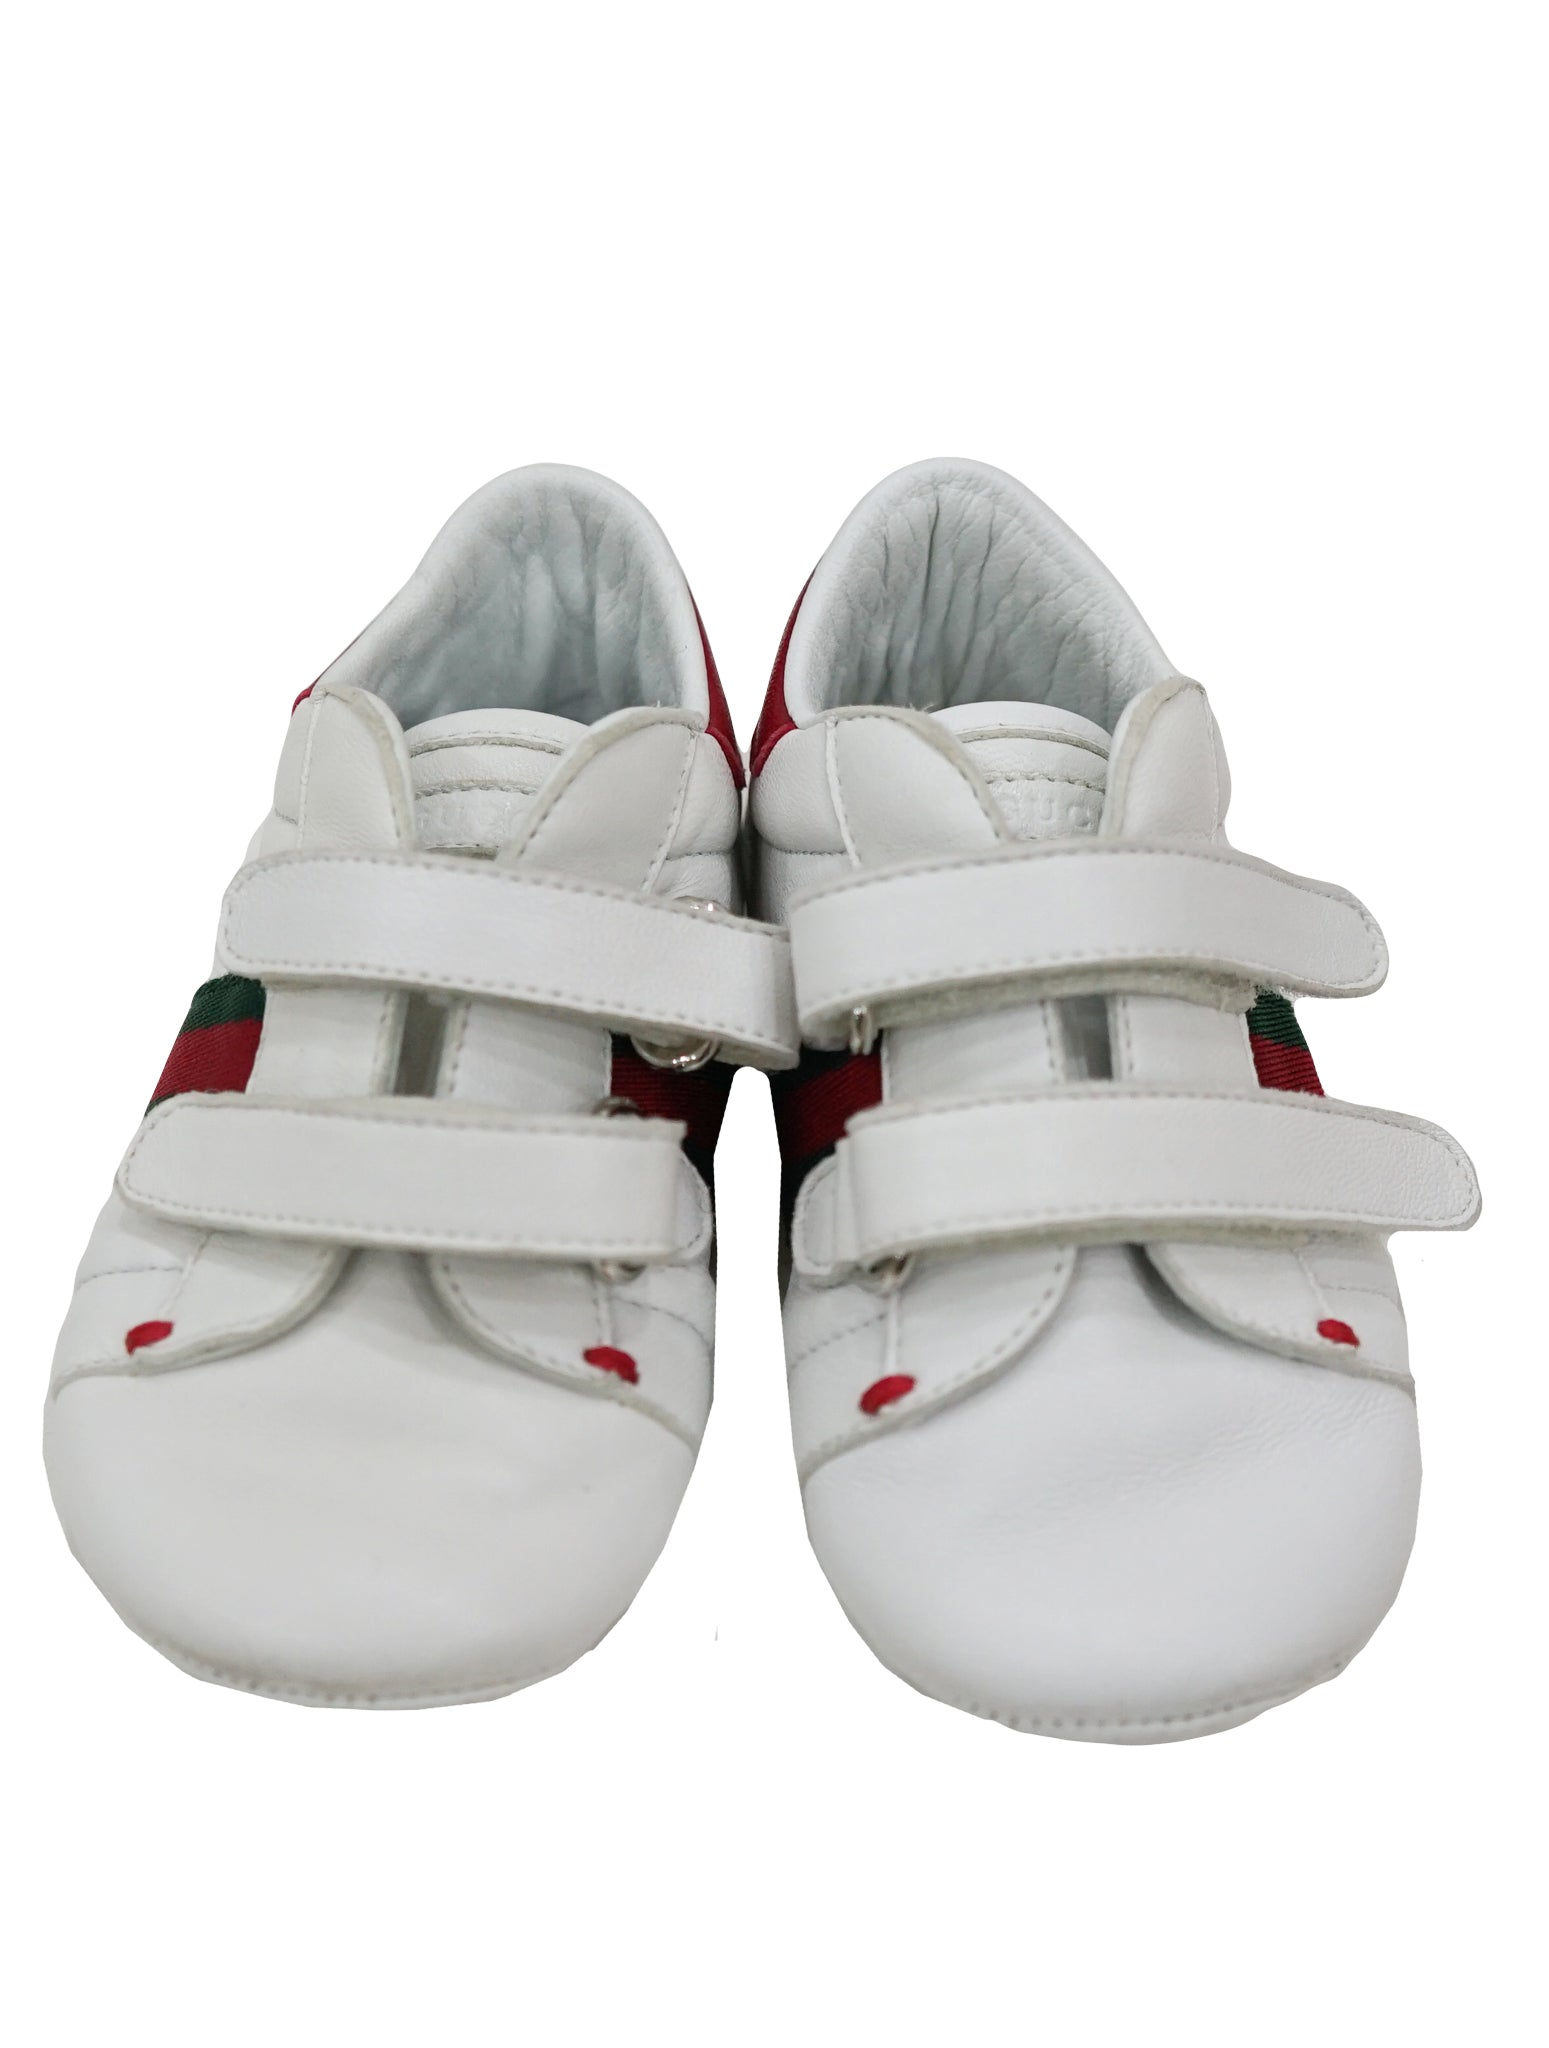 5a4f5b998 GUCCI BABY BOY ACE LEATHER SNEAKER – Kidsstyleforless